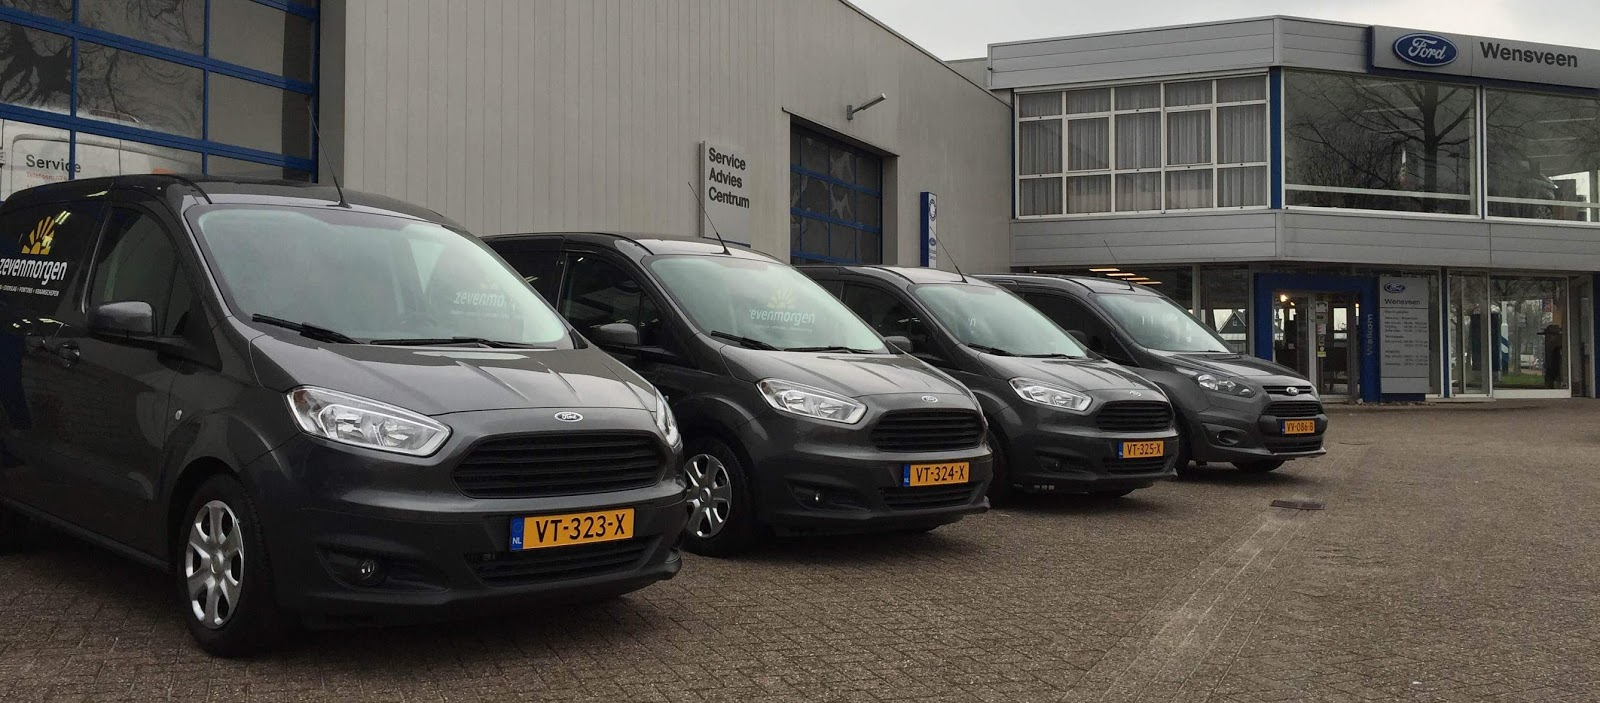 Ford wensveen